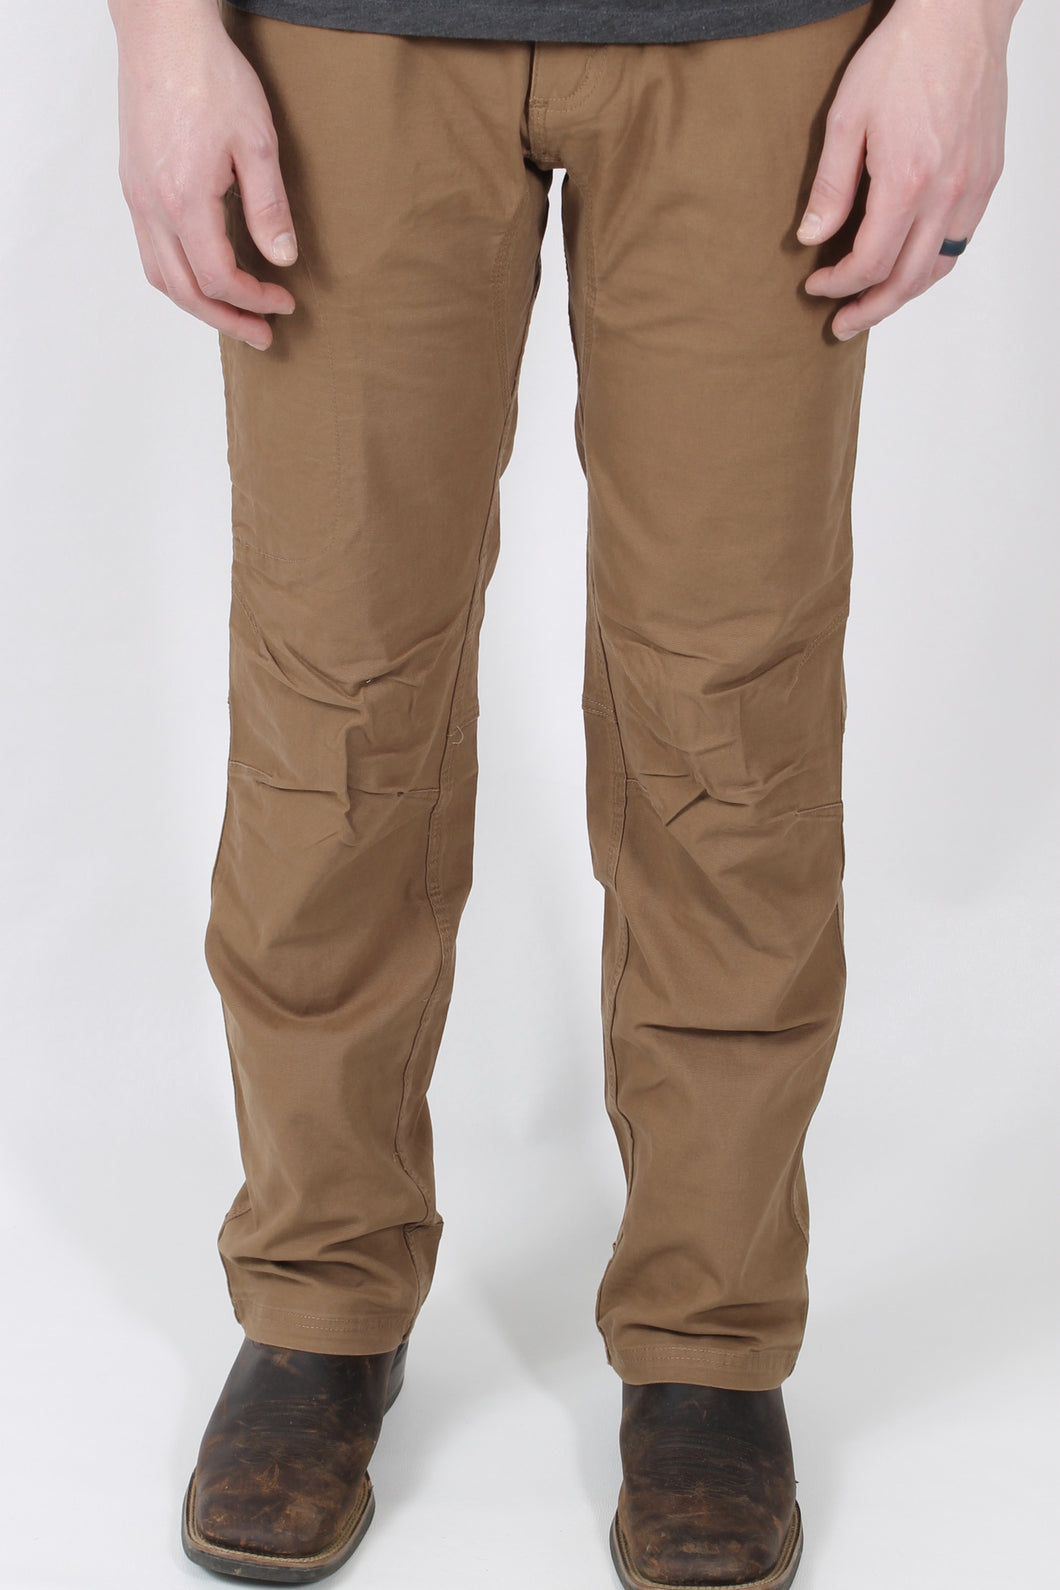 Tobacco Pants- Mountain Khaki Camber Pants Front